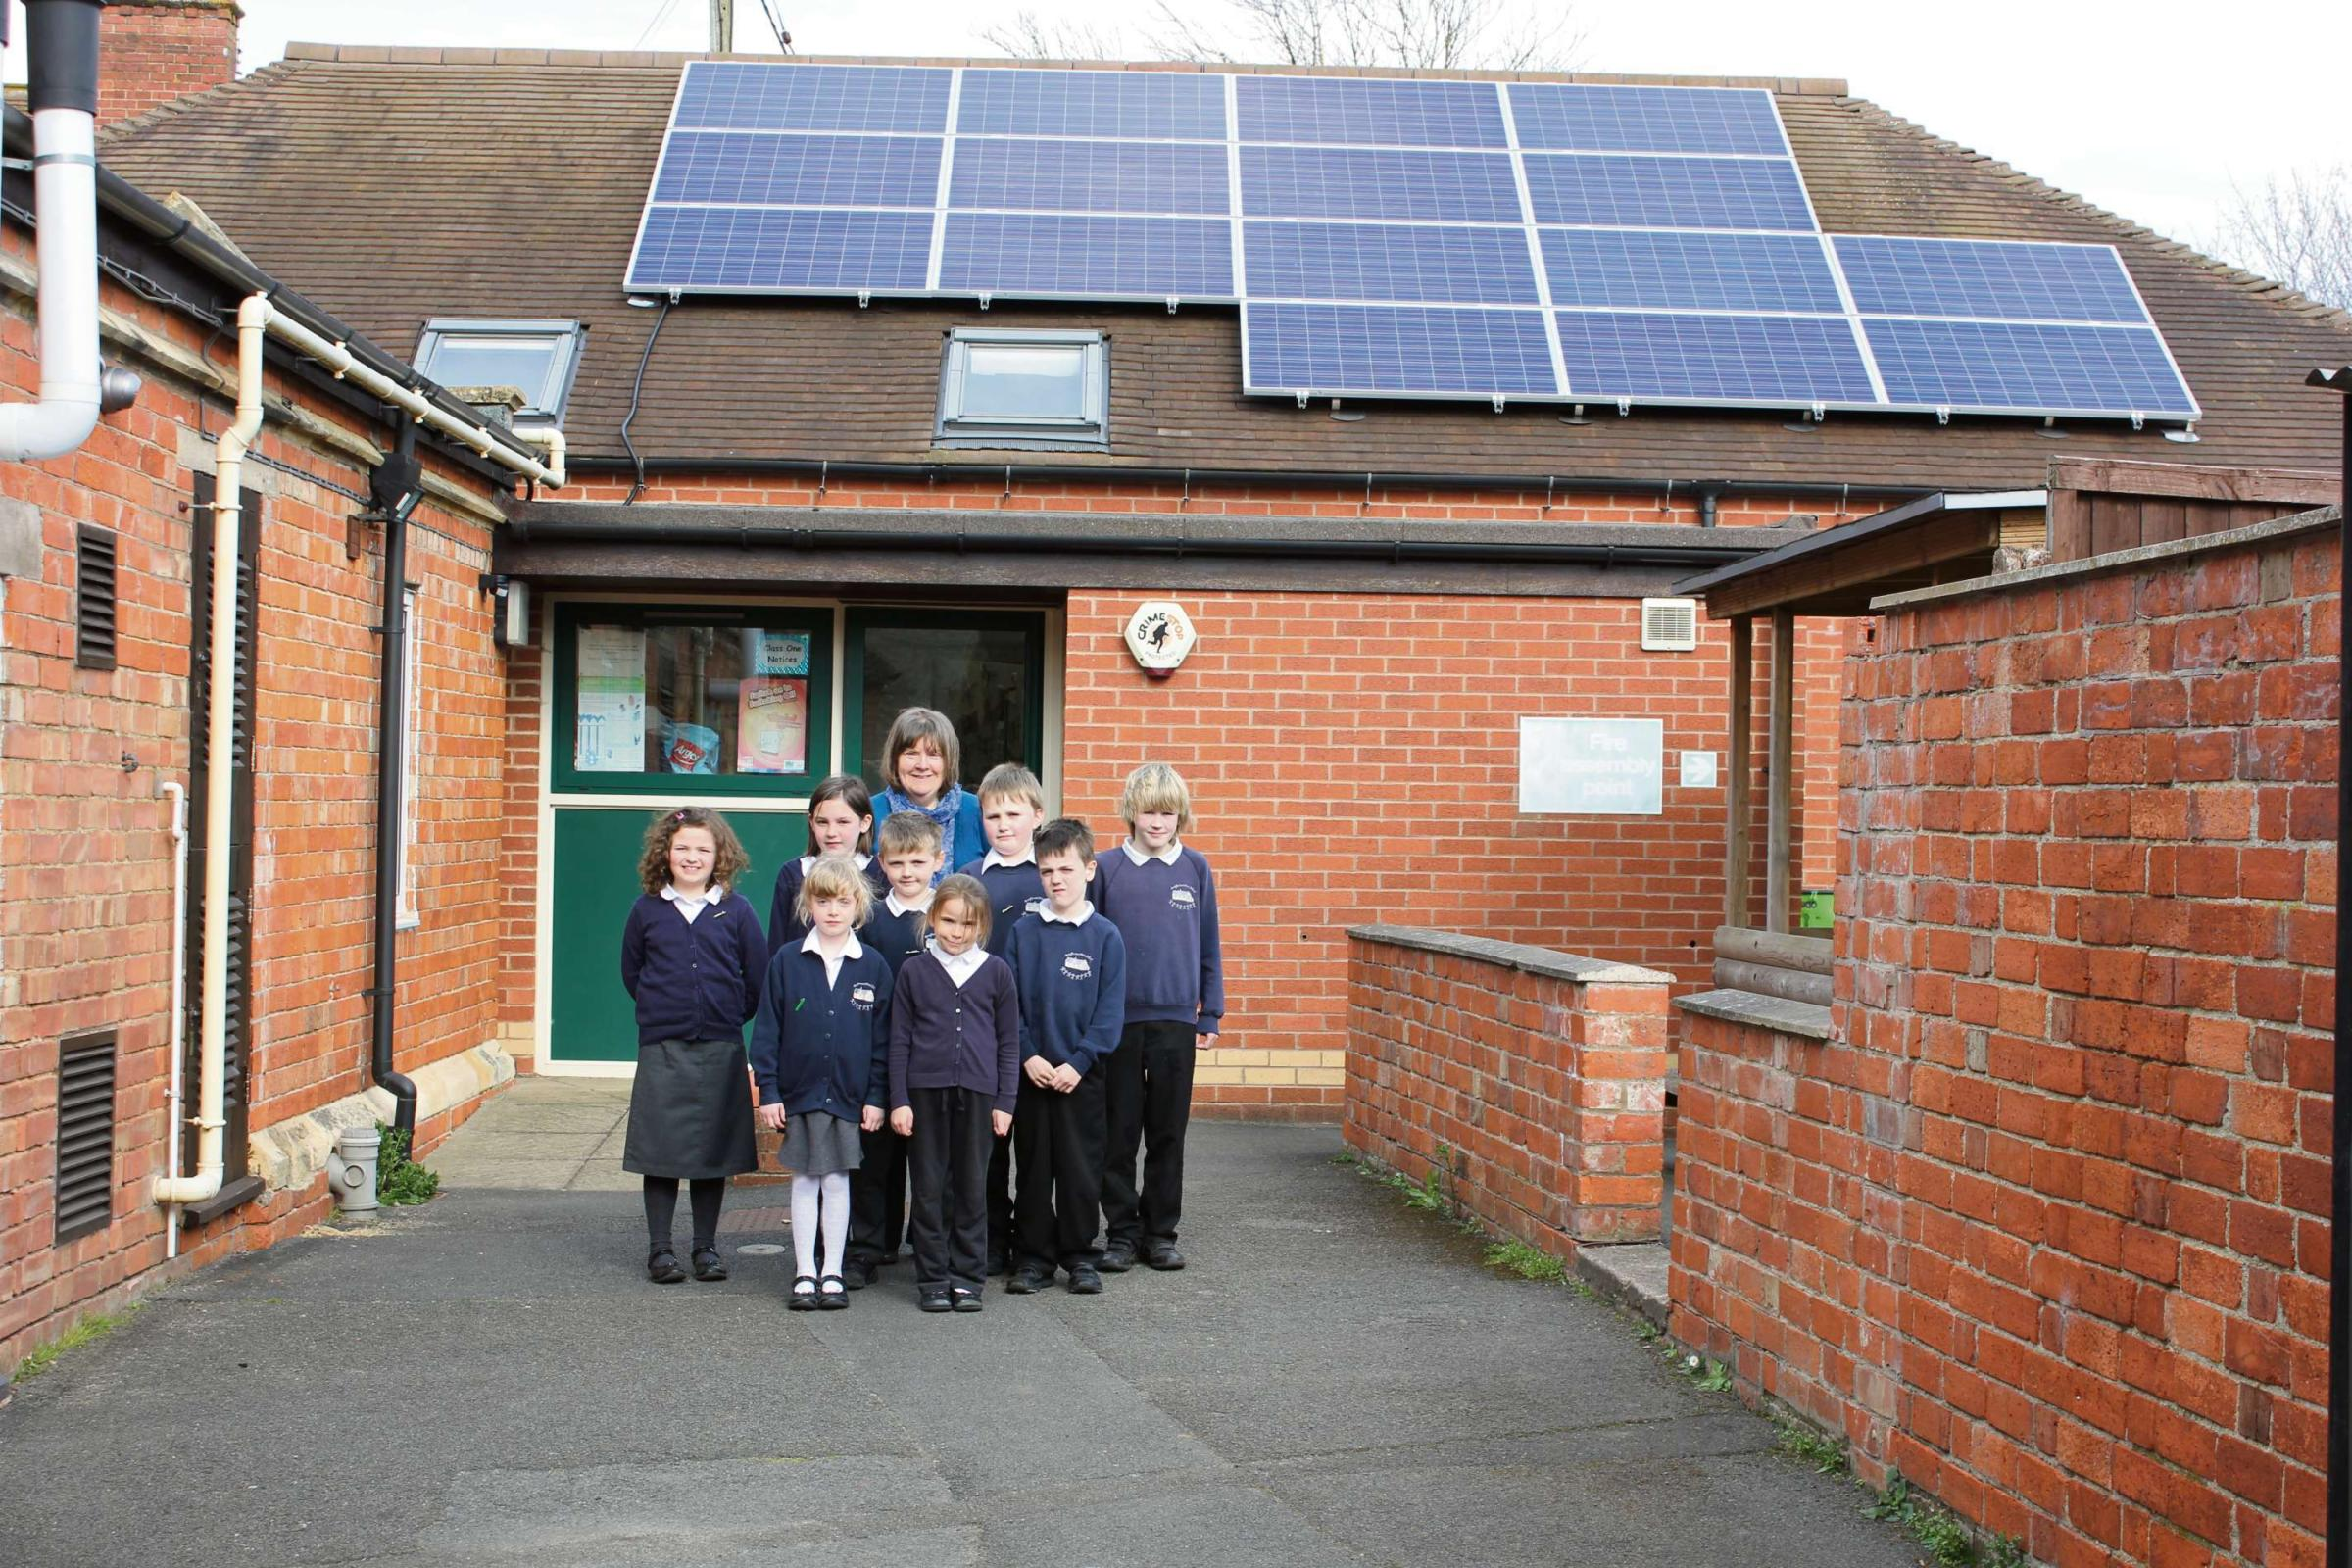 Jane Neal, eco-co-ordinator at the school, with Charlotte Burkert, George Hair and Robbie Clarke (back row) , Olivia Walters, Oliver Enstone and Jacob Buckland (middle row), Maisie-Anne Chatterton and Rosy Smith (front row).